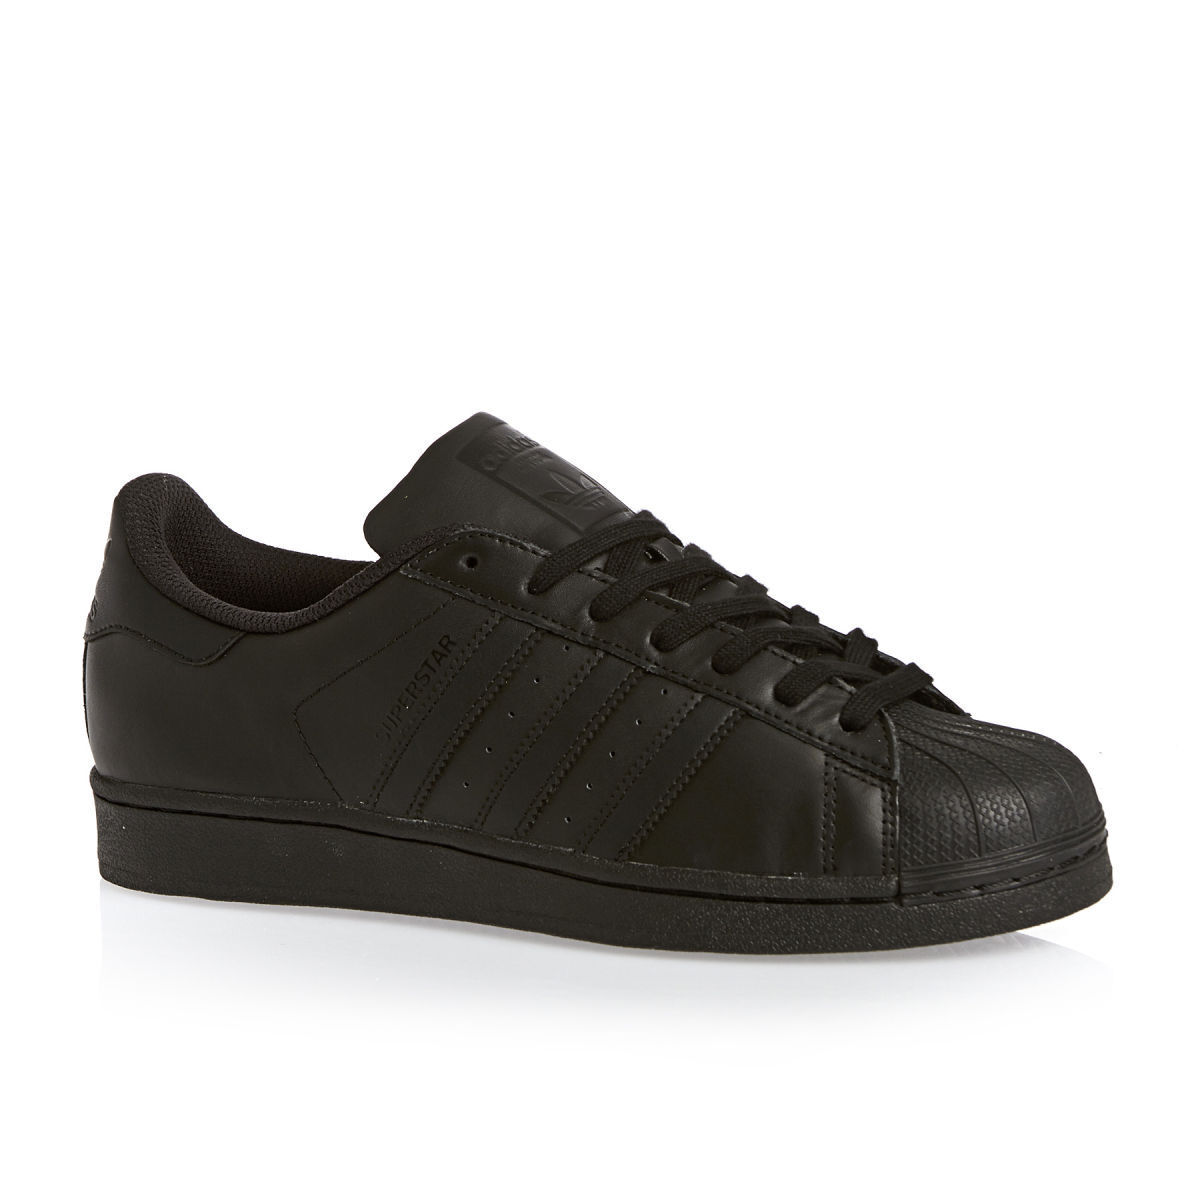 Adidas Superstar Foundation Core Black Retro Casual Trainers Sizes 7-13  AF5666